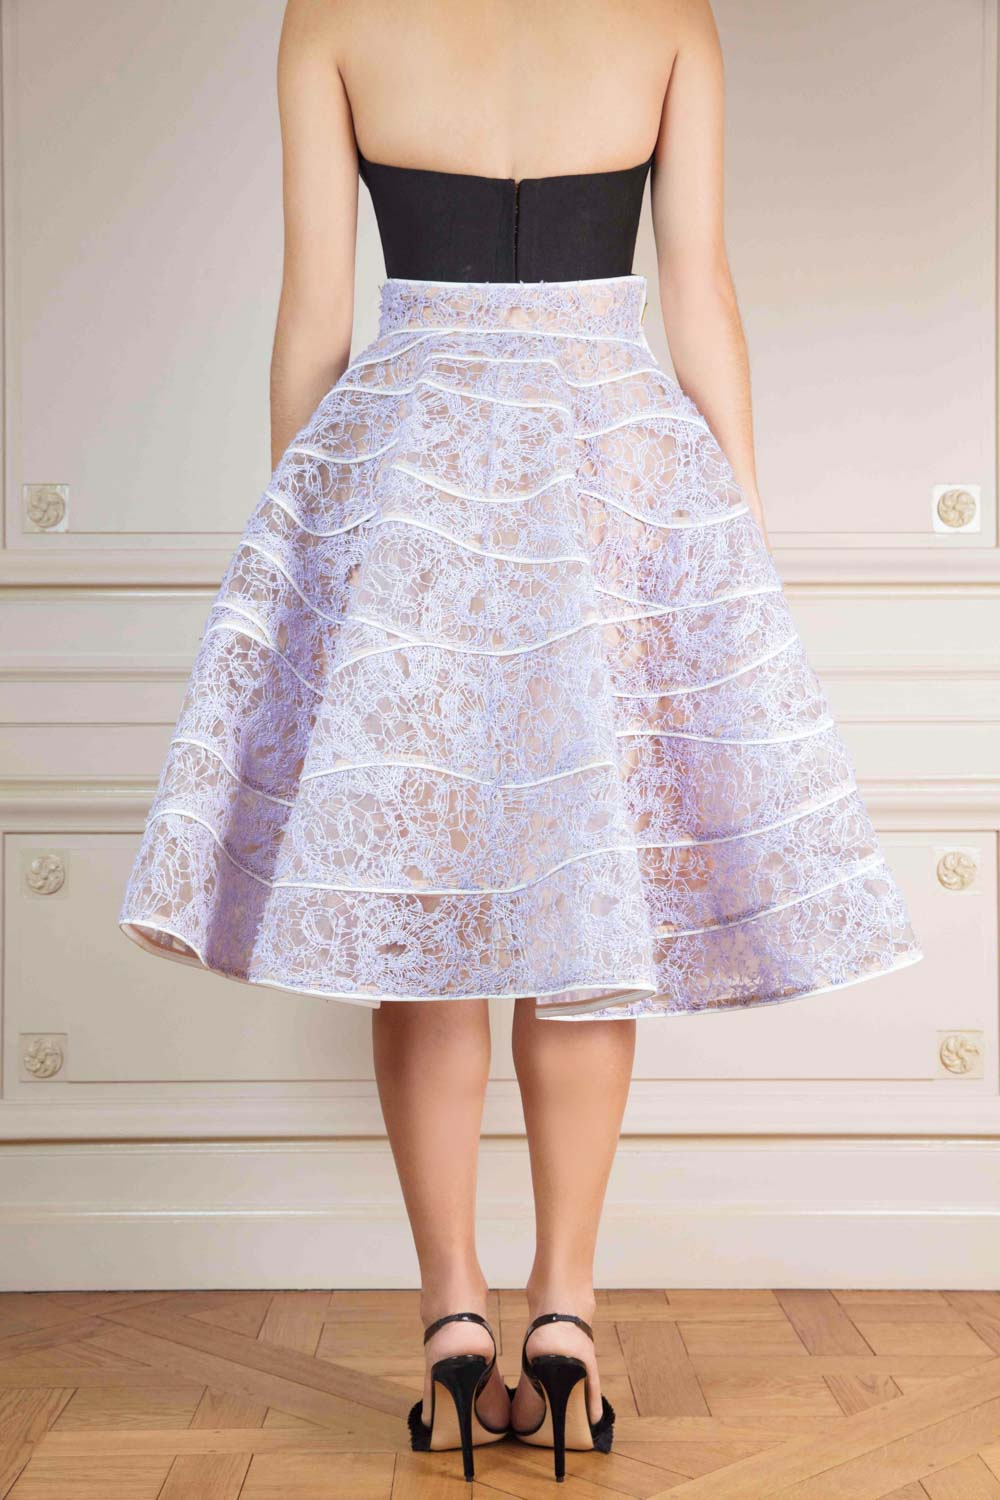 Exclusive white macramé lace midi skirt with leather details